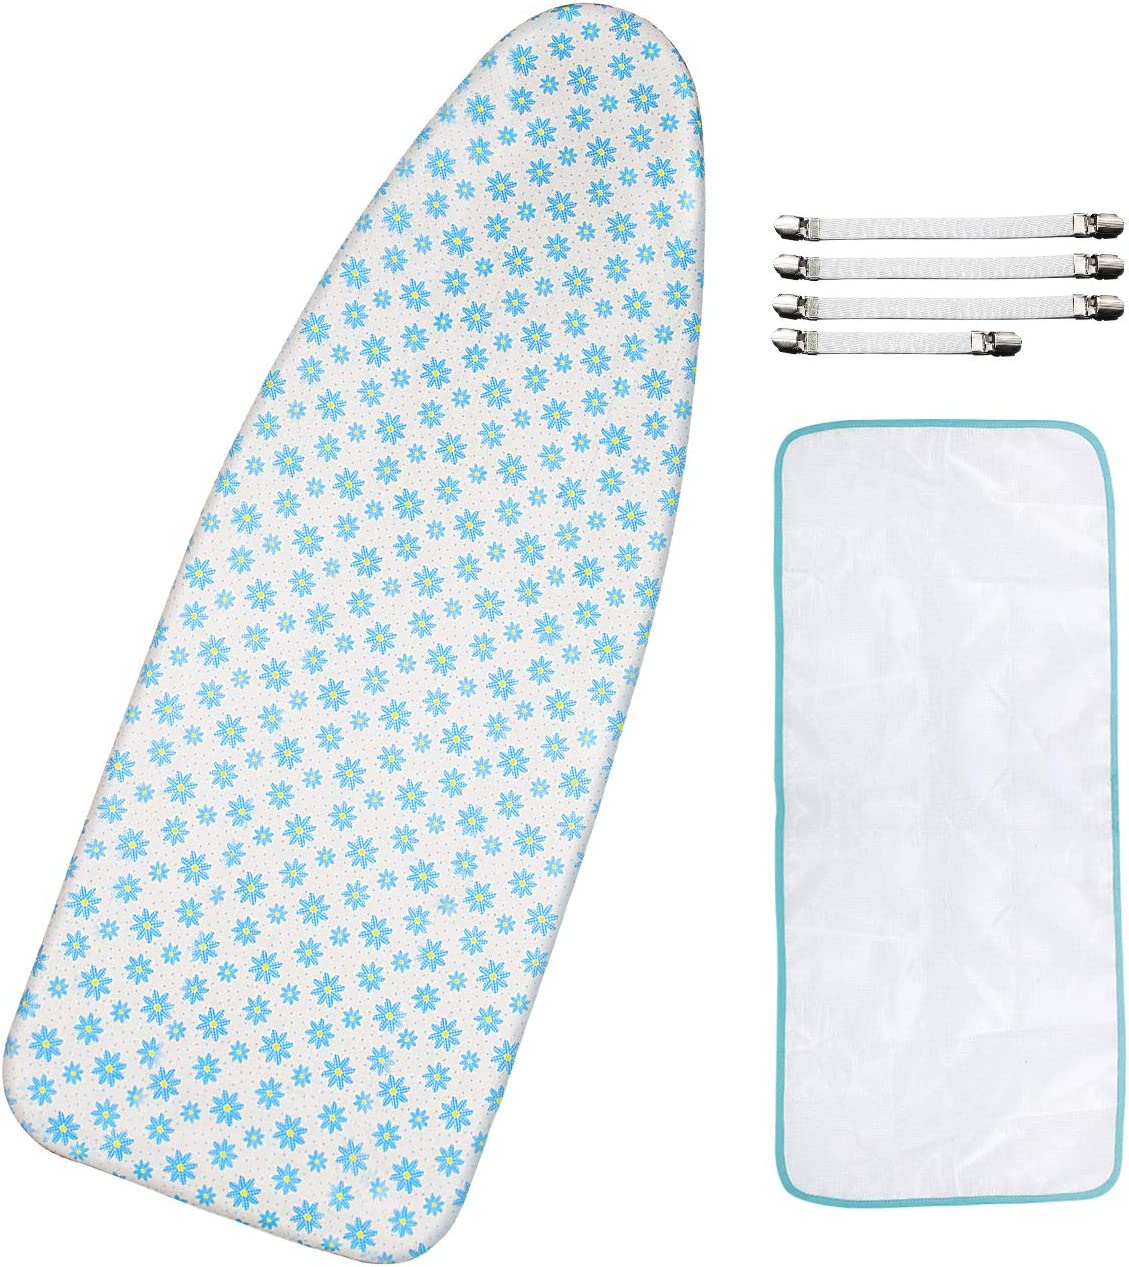 "Dalykate Replacement Ironing Board Cover and Pad with Elastic Edge and Scorch and Stain Resistant Thick Padding Ironing Board Covers 4 Fasteners and 1 Protective Scorch Mesh Cloth (Floral, 18"" X 49"")"